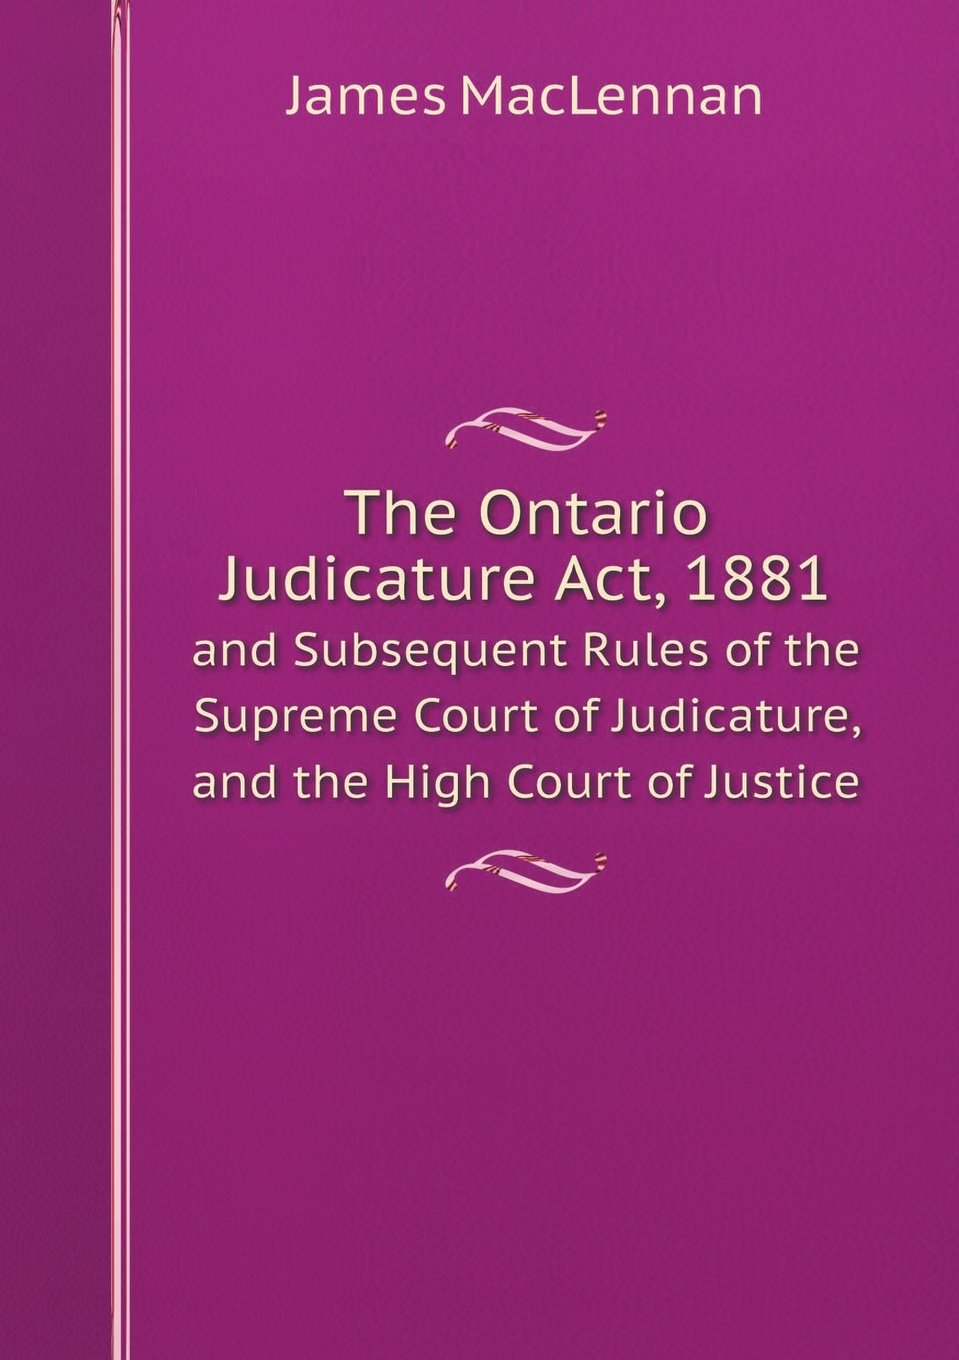 Read Online The Ontario Judicature Act, 1881 and Subsequent Rules of the Supreme Court of Judicature, and the High Court of Justice PDF